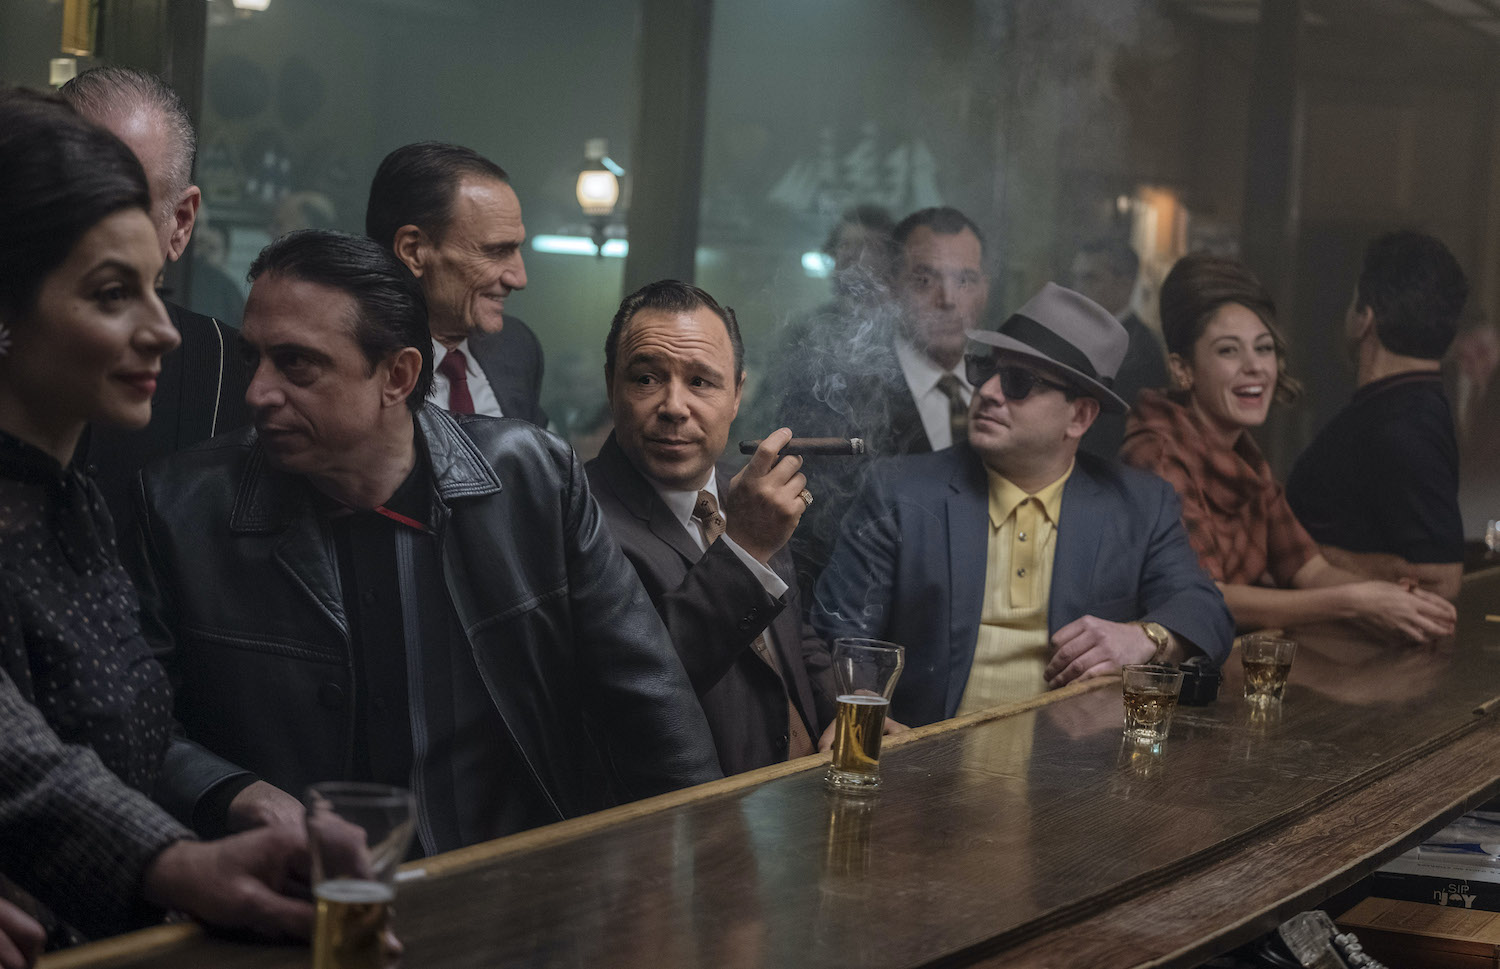 Stephen Graham and Al Linea in The Irishman (2019)